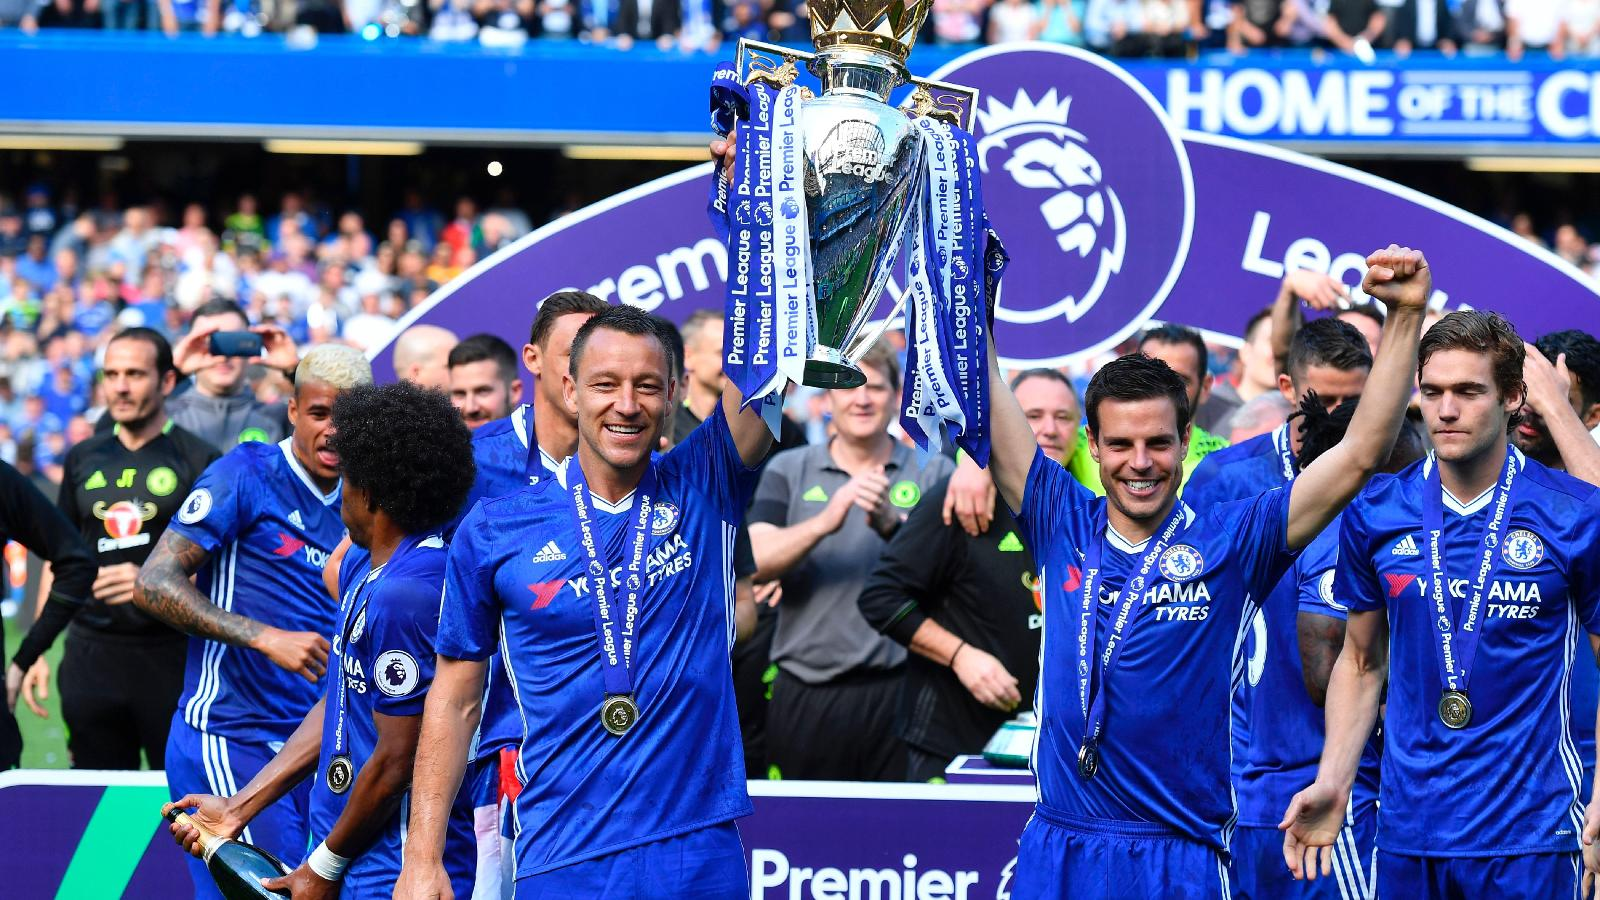 'Compelling football and reasons to celebrate'